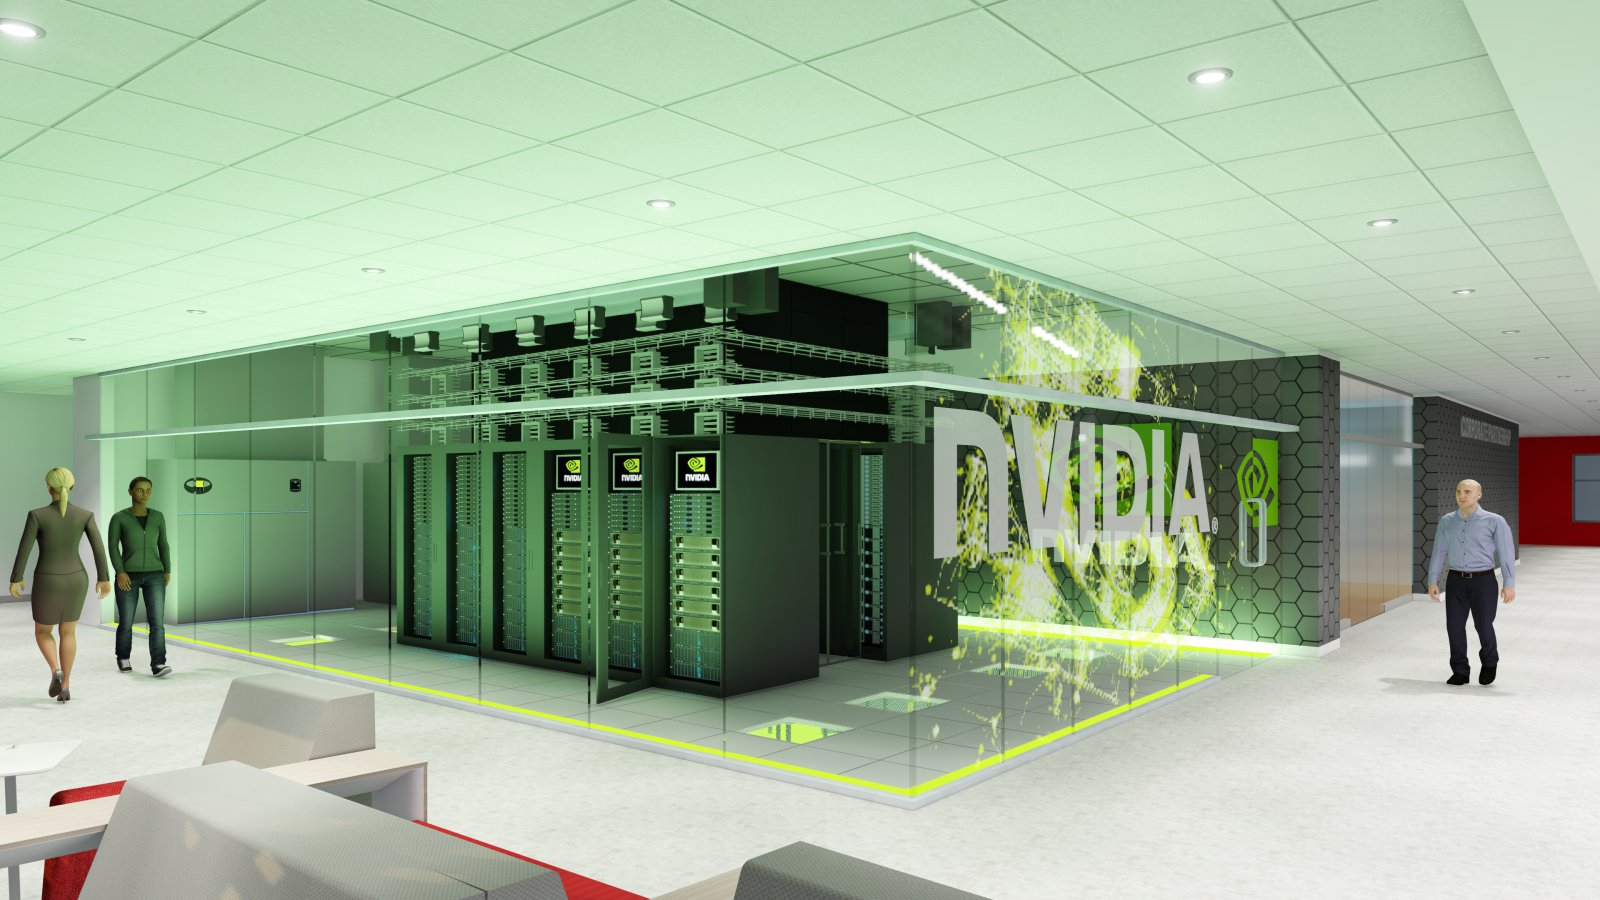 View of NVIDIA supercomputer